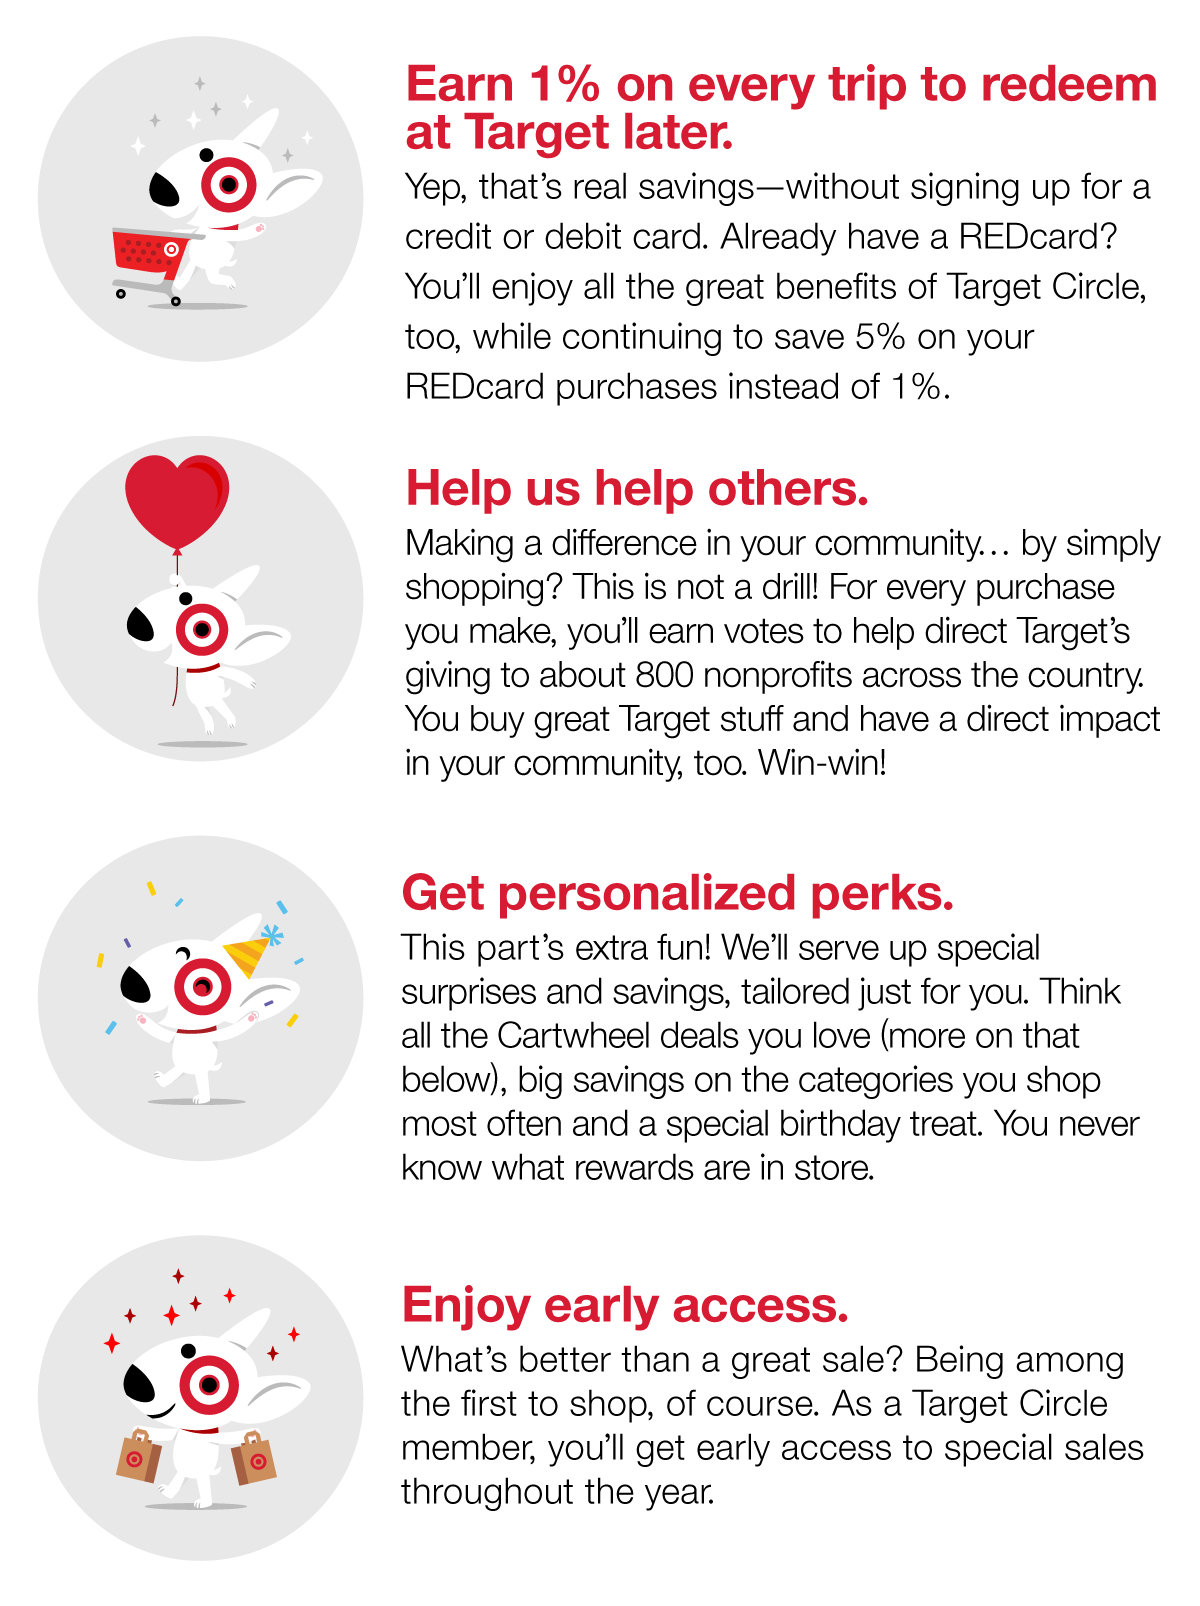 A graphic featuring four different Bullseye the dog icons, each highlighting a perk of Target Circle membership